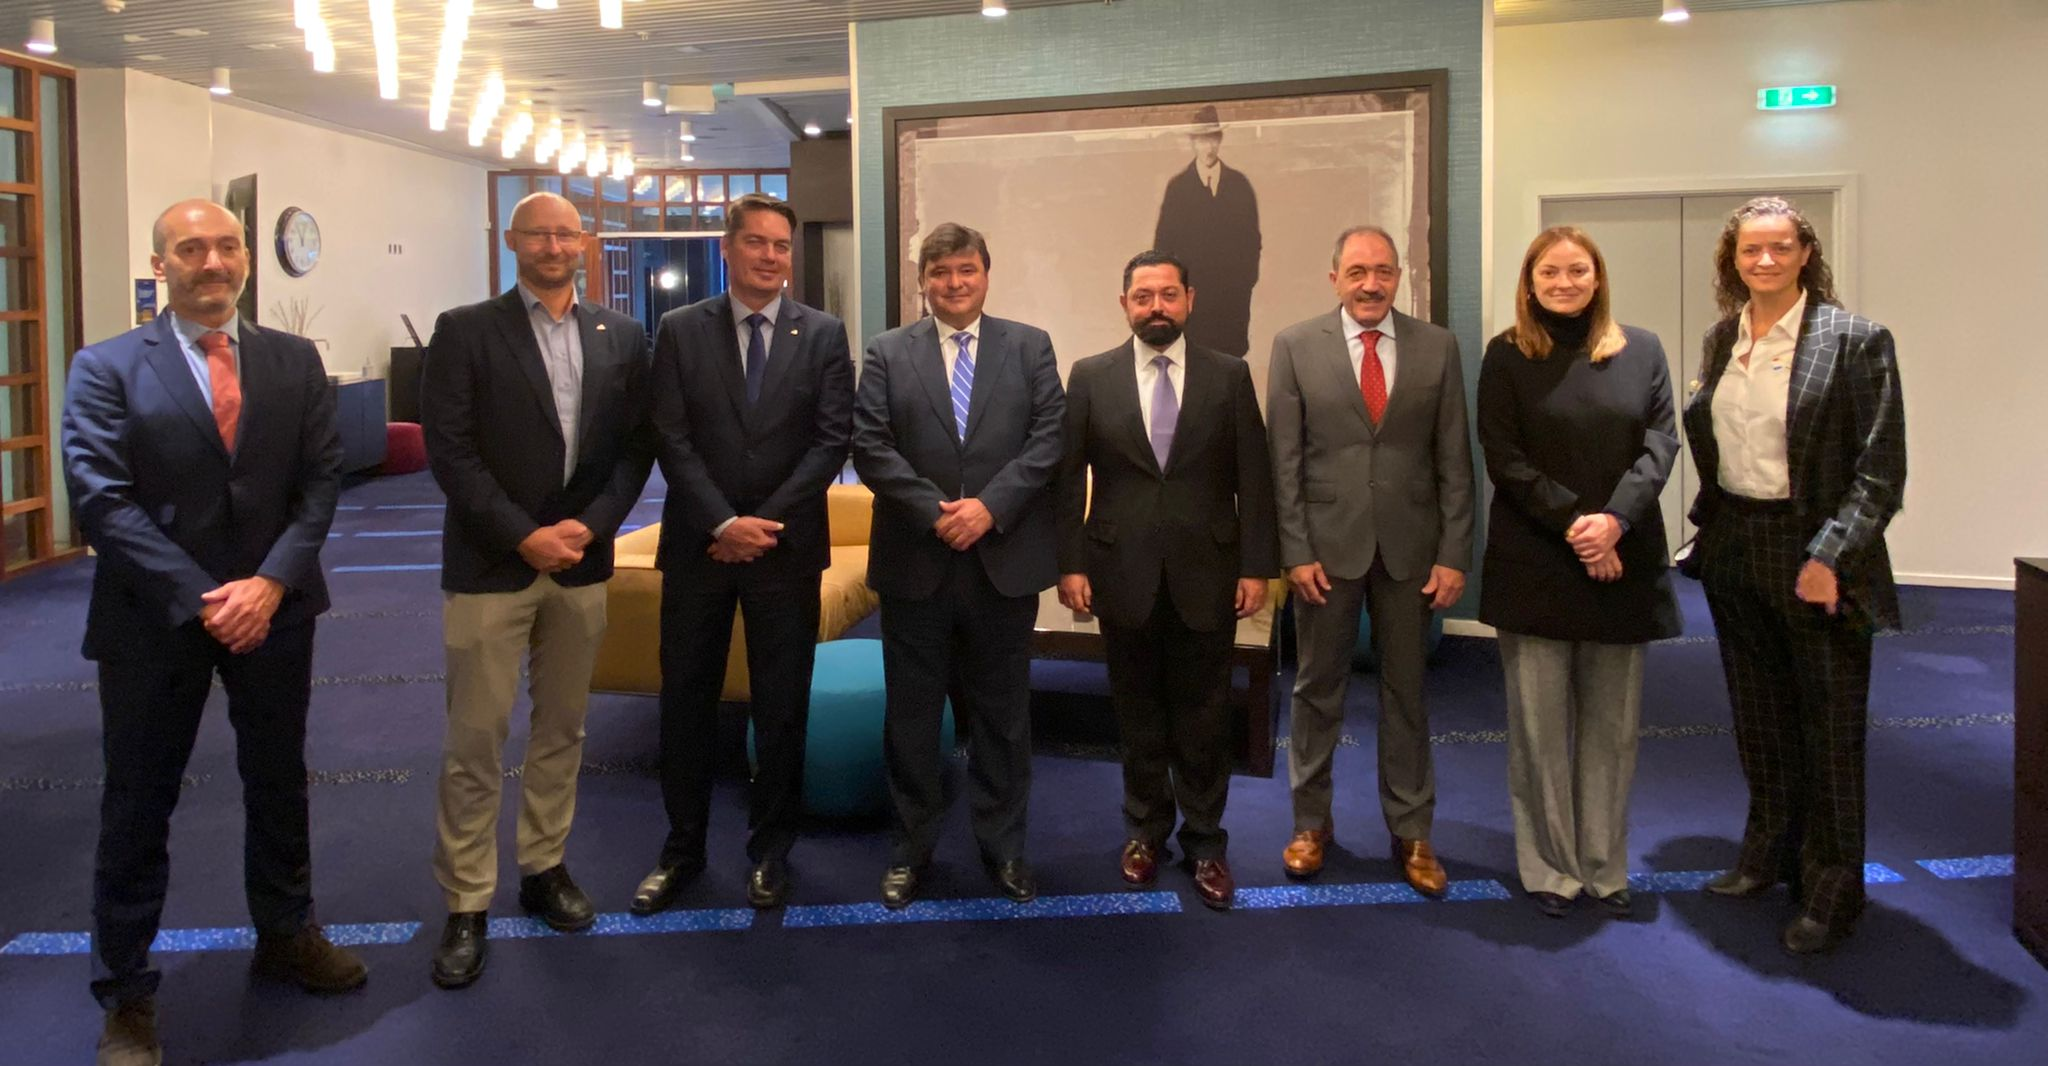 The Huelva 2021 World Championships arrives to the BWF Thomas and Uber Cup Finals